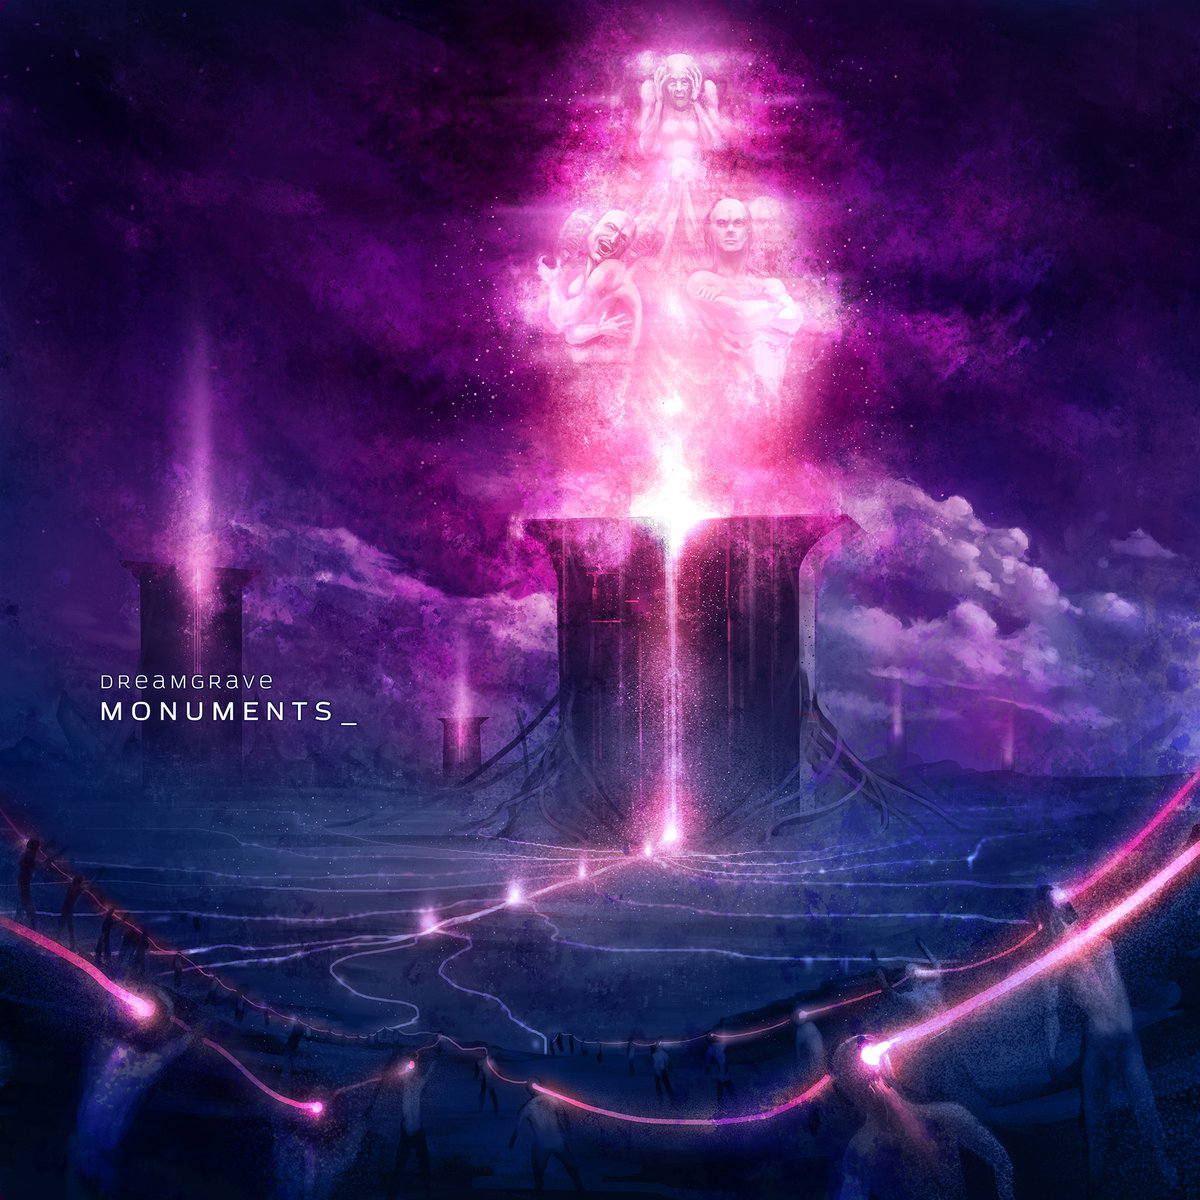 Dreamgrave: Monuments